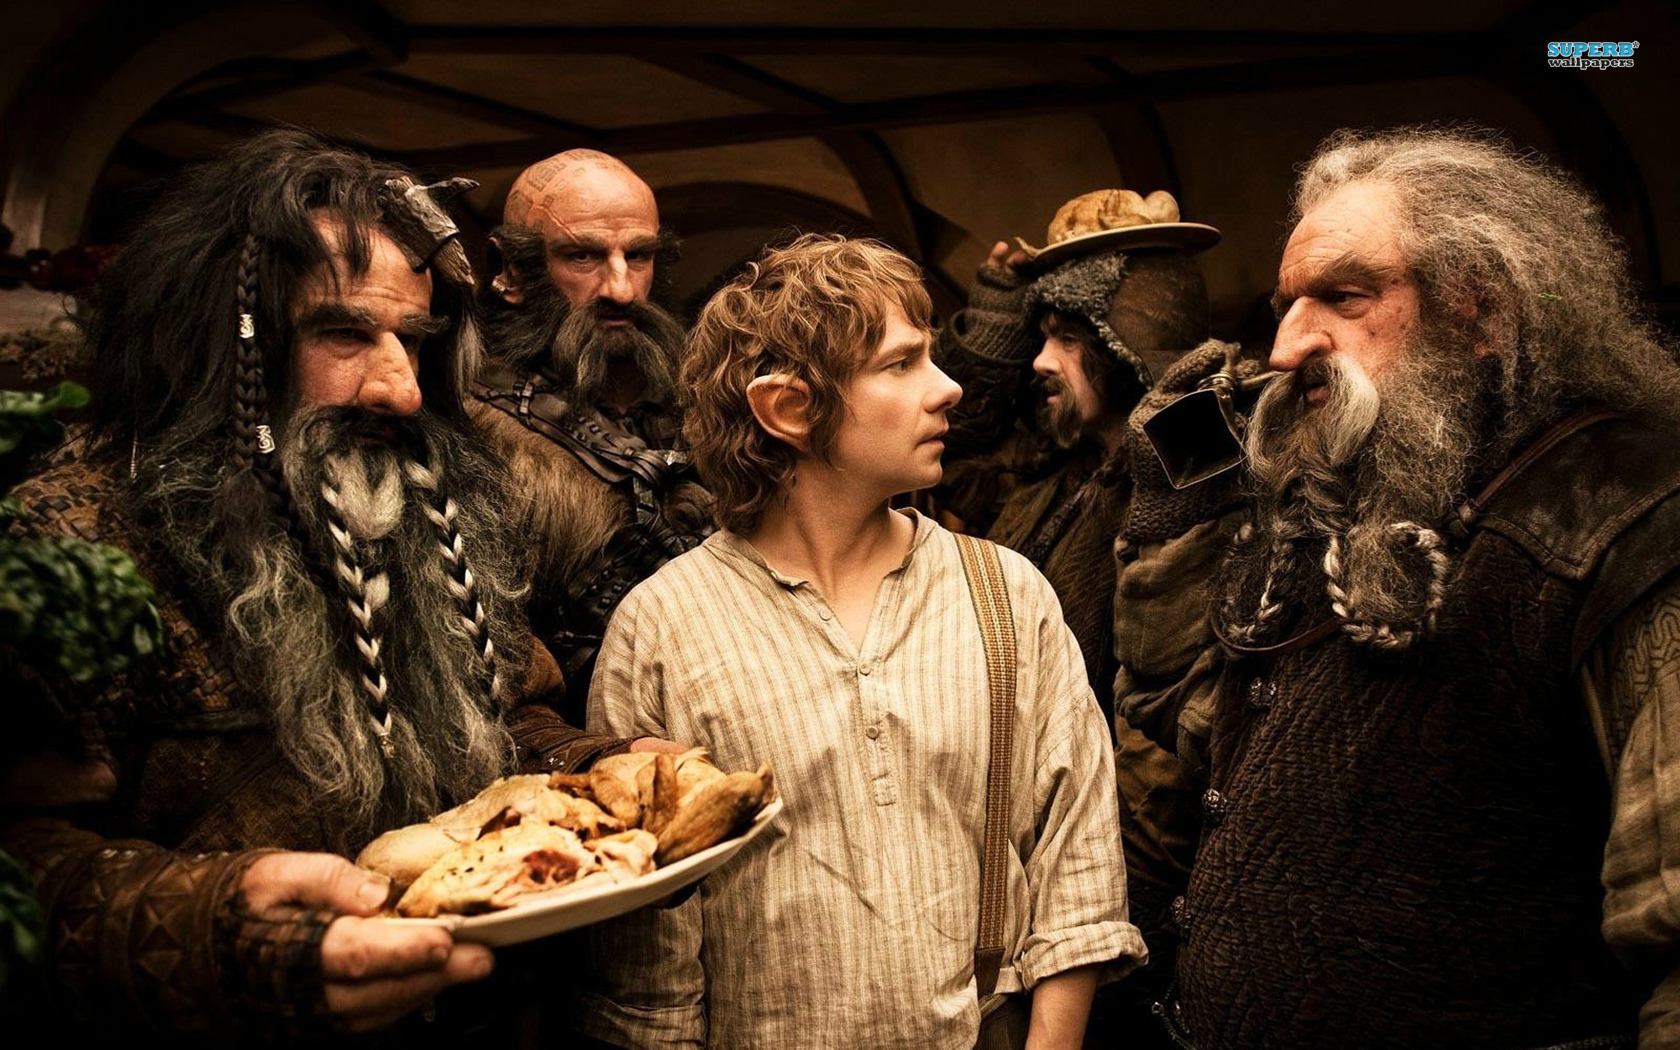 Movie Review - Hobbit, The: An Unexpected Journey